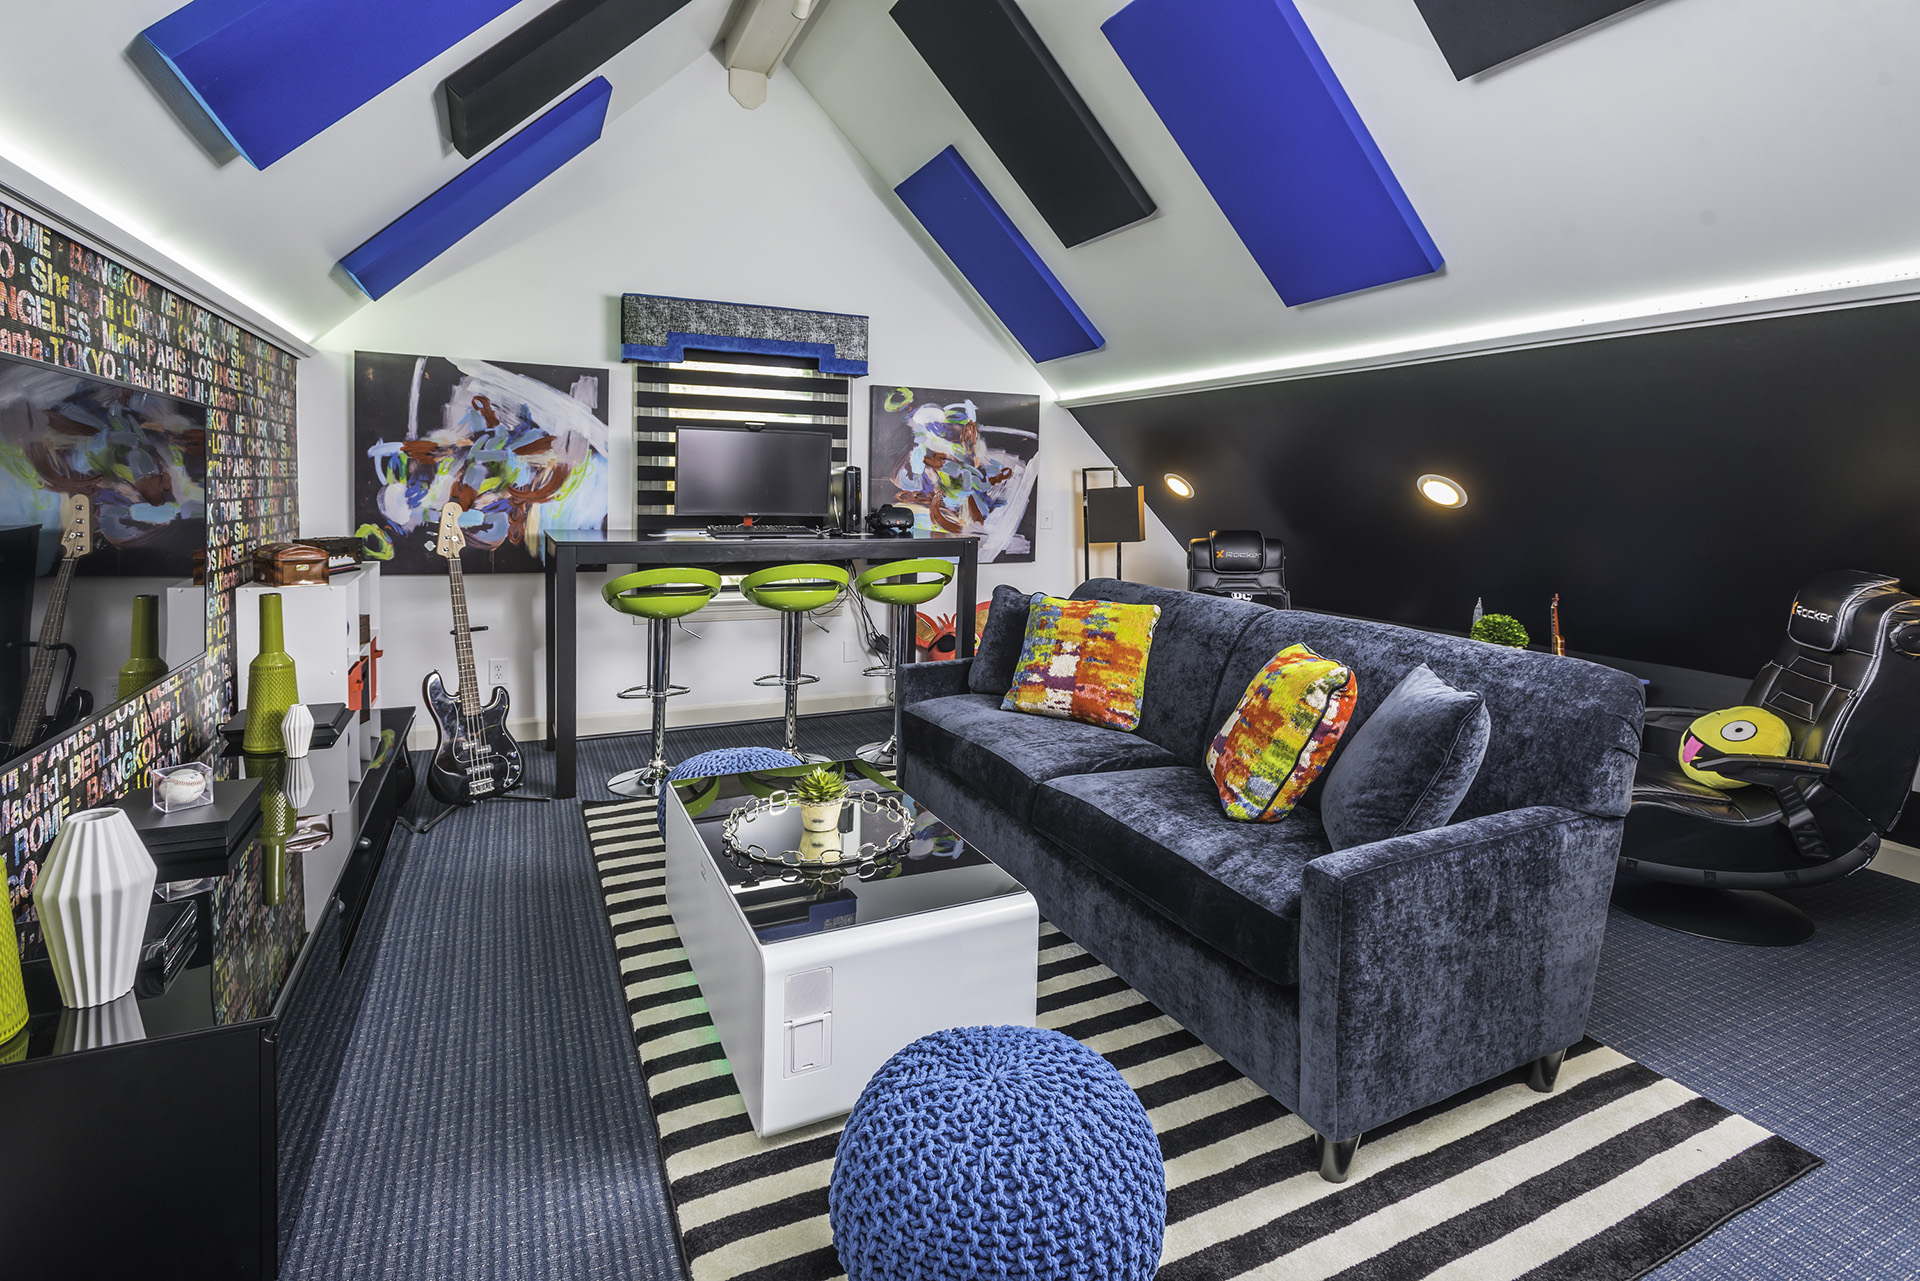 For homeowners with creativity and a need for something different, there's great potential for life. Game Room Interior Designer Loveland | Decorator for ...